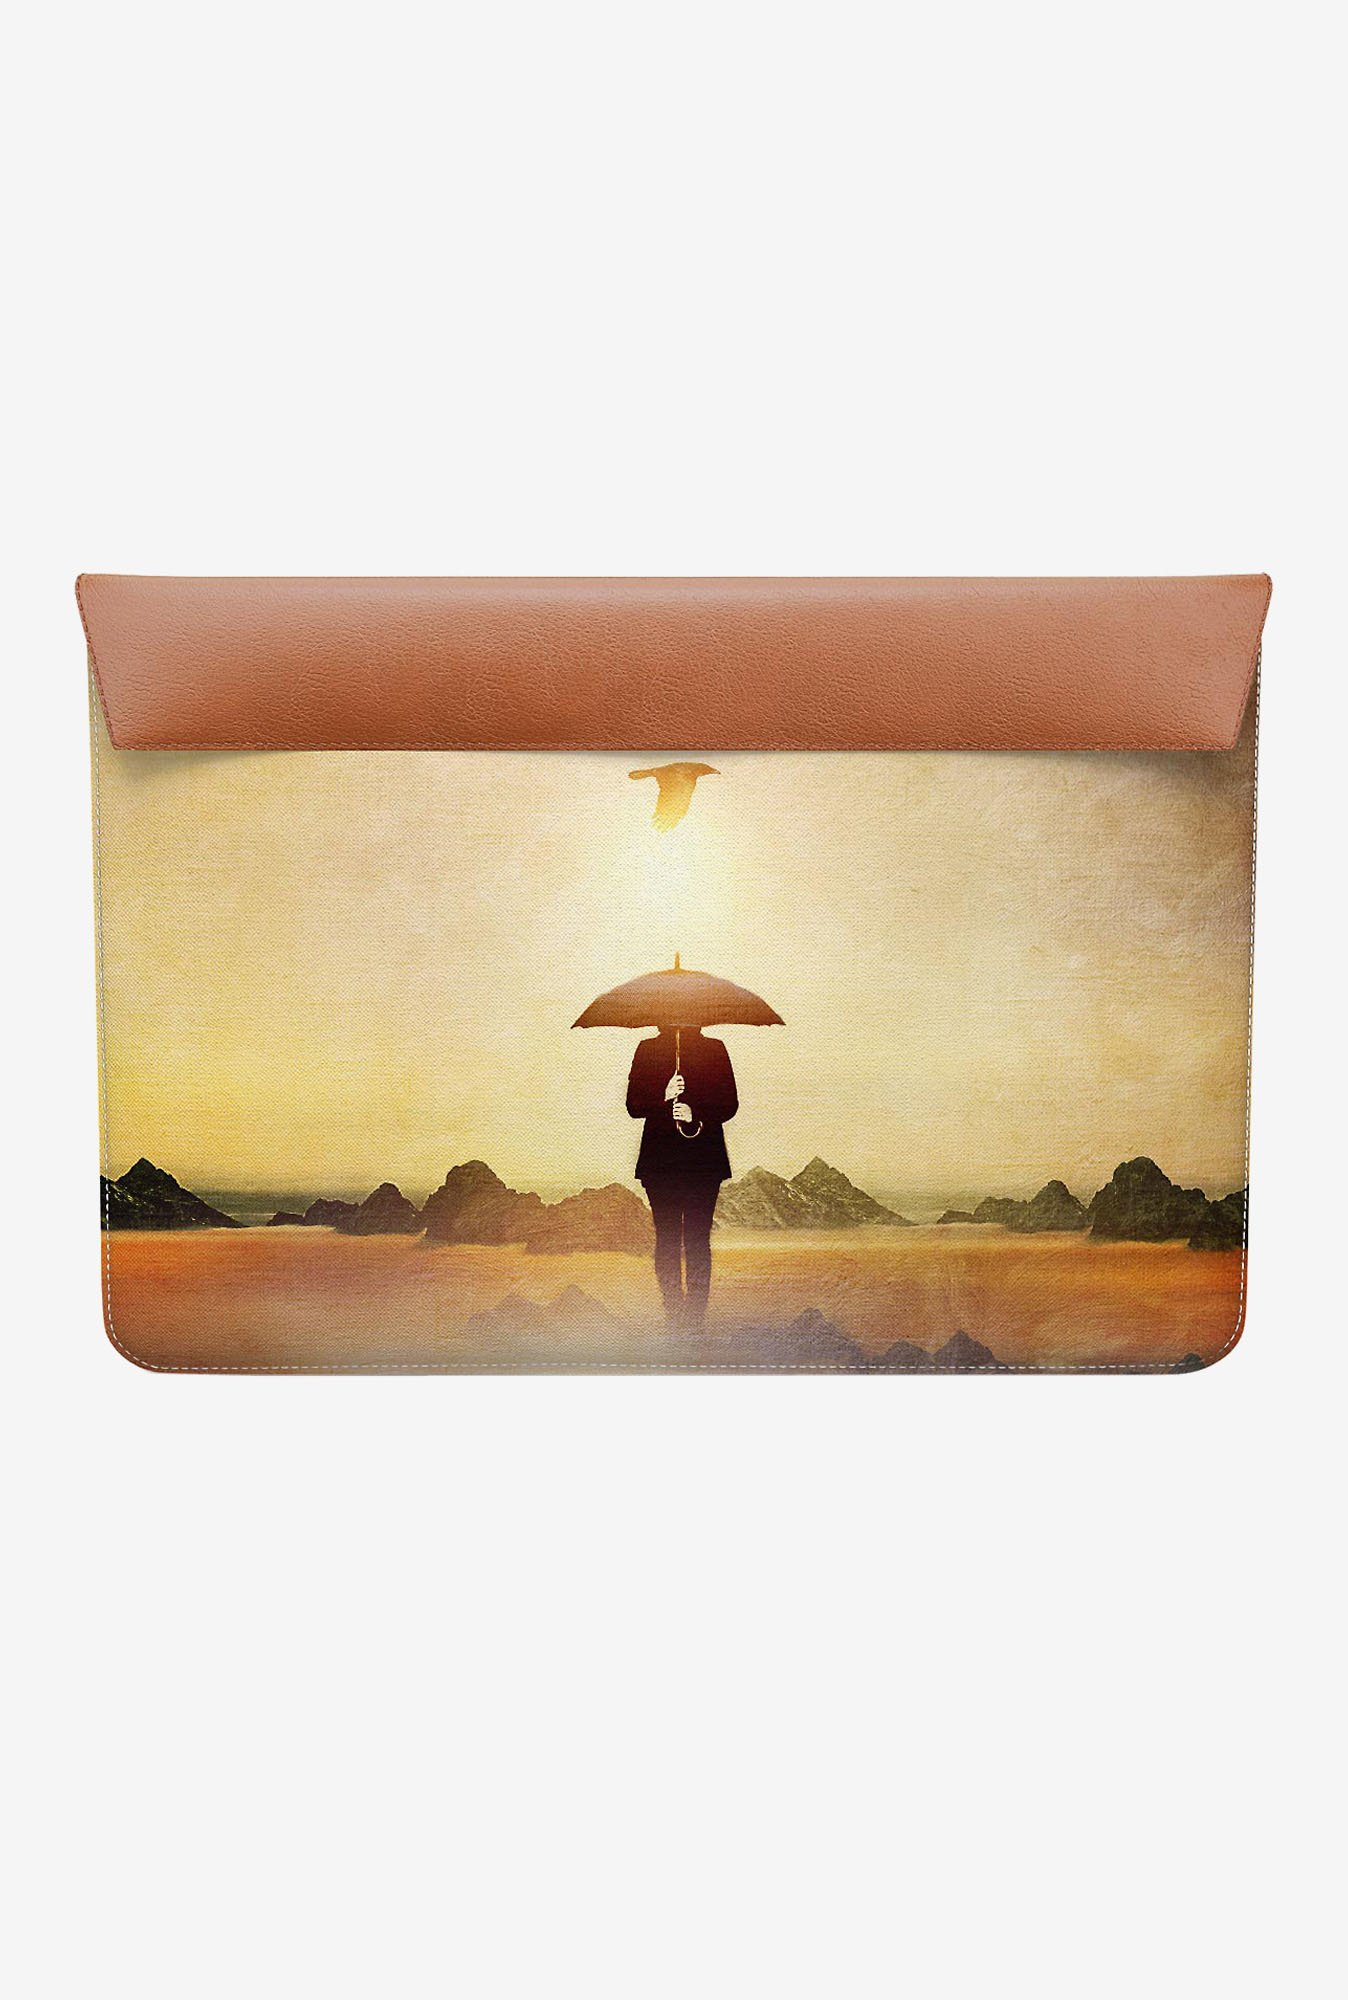 DailyObjects Wait For Rain MacBook Pro 13 Envelope Sleeve